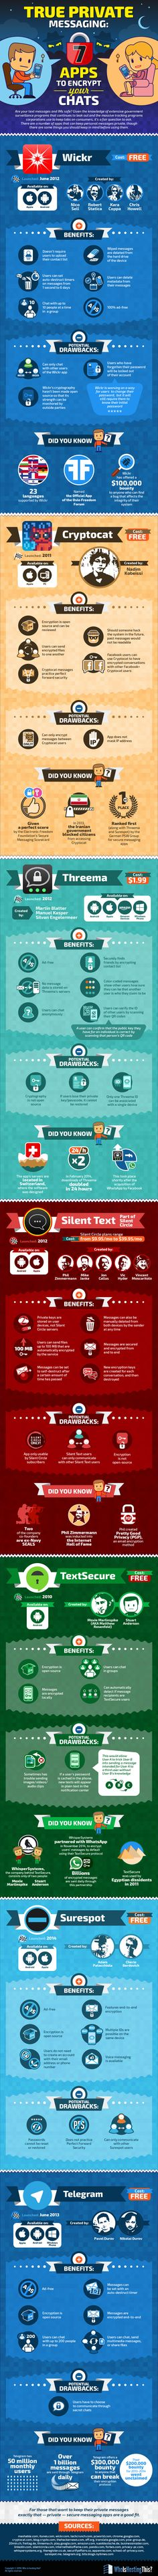 True Private Messaging: 7 Apps to Encrypt Your Chats - infographic